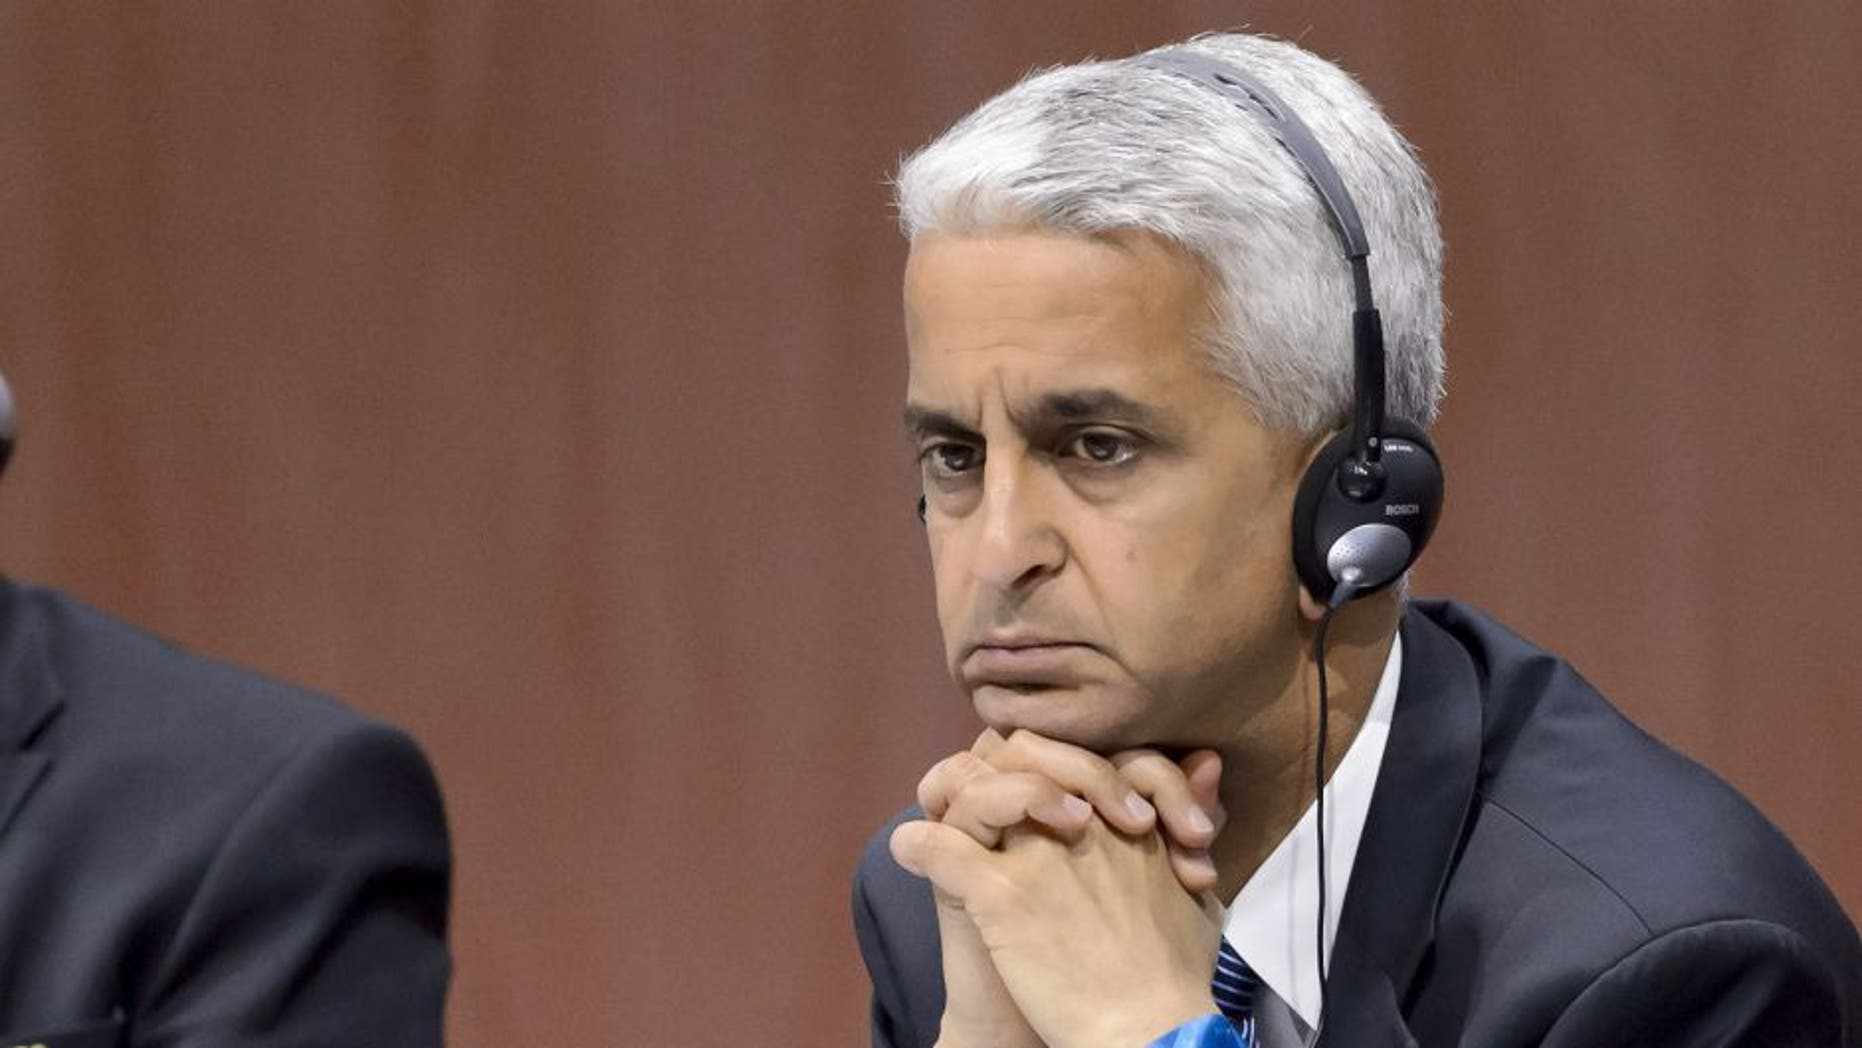 Russian Sport Minister Vitaliy Mutko (L) and US Soccer President Sunil Gulati, both FIFA Executive members, attend the 65th FIFA Congress in Zurich on May 29, 2015 in Zurich. Gulati said he is joining the bid to oust embattled FIFA president Sepp Blatter, in a move that could risk America's chances of hosting another World Cup. AFP PHOTO / FABRICE COFFRINI (Photo credit should read FABRICE COFFRINI/AFP/Getty Images)